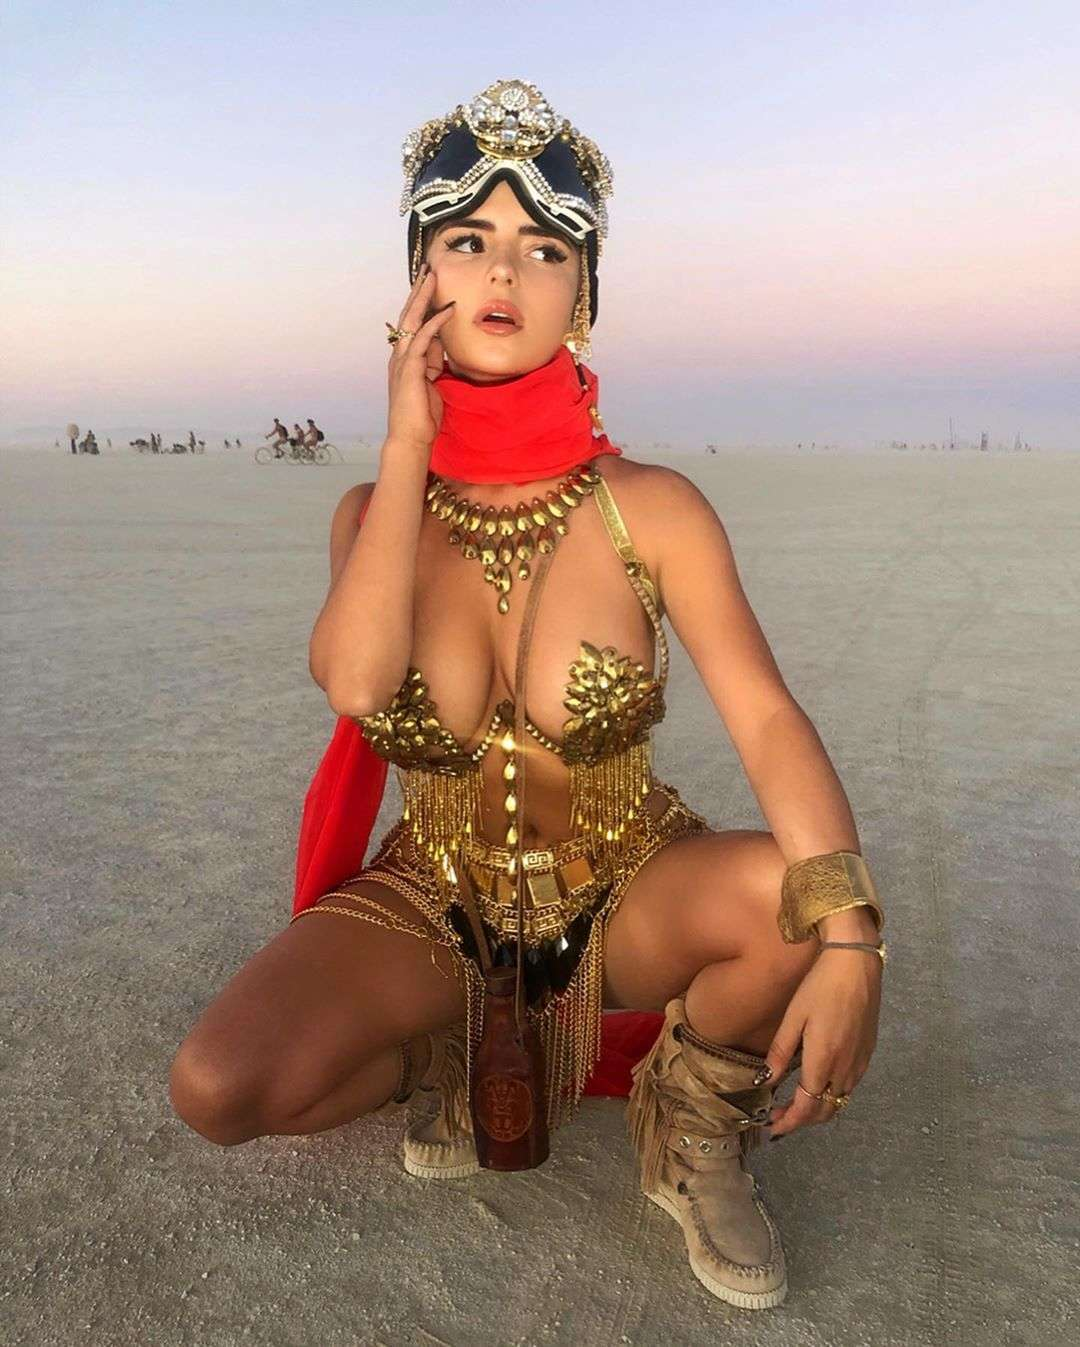 Demi Rose Mawby for Photshoot at the Beach